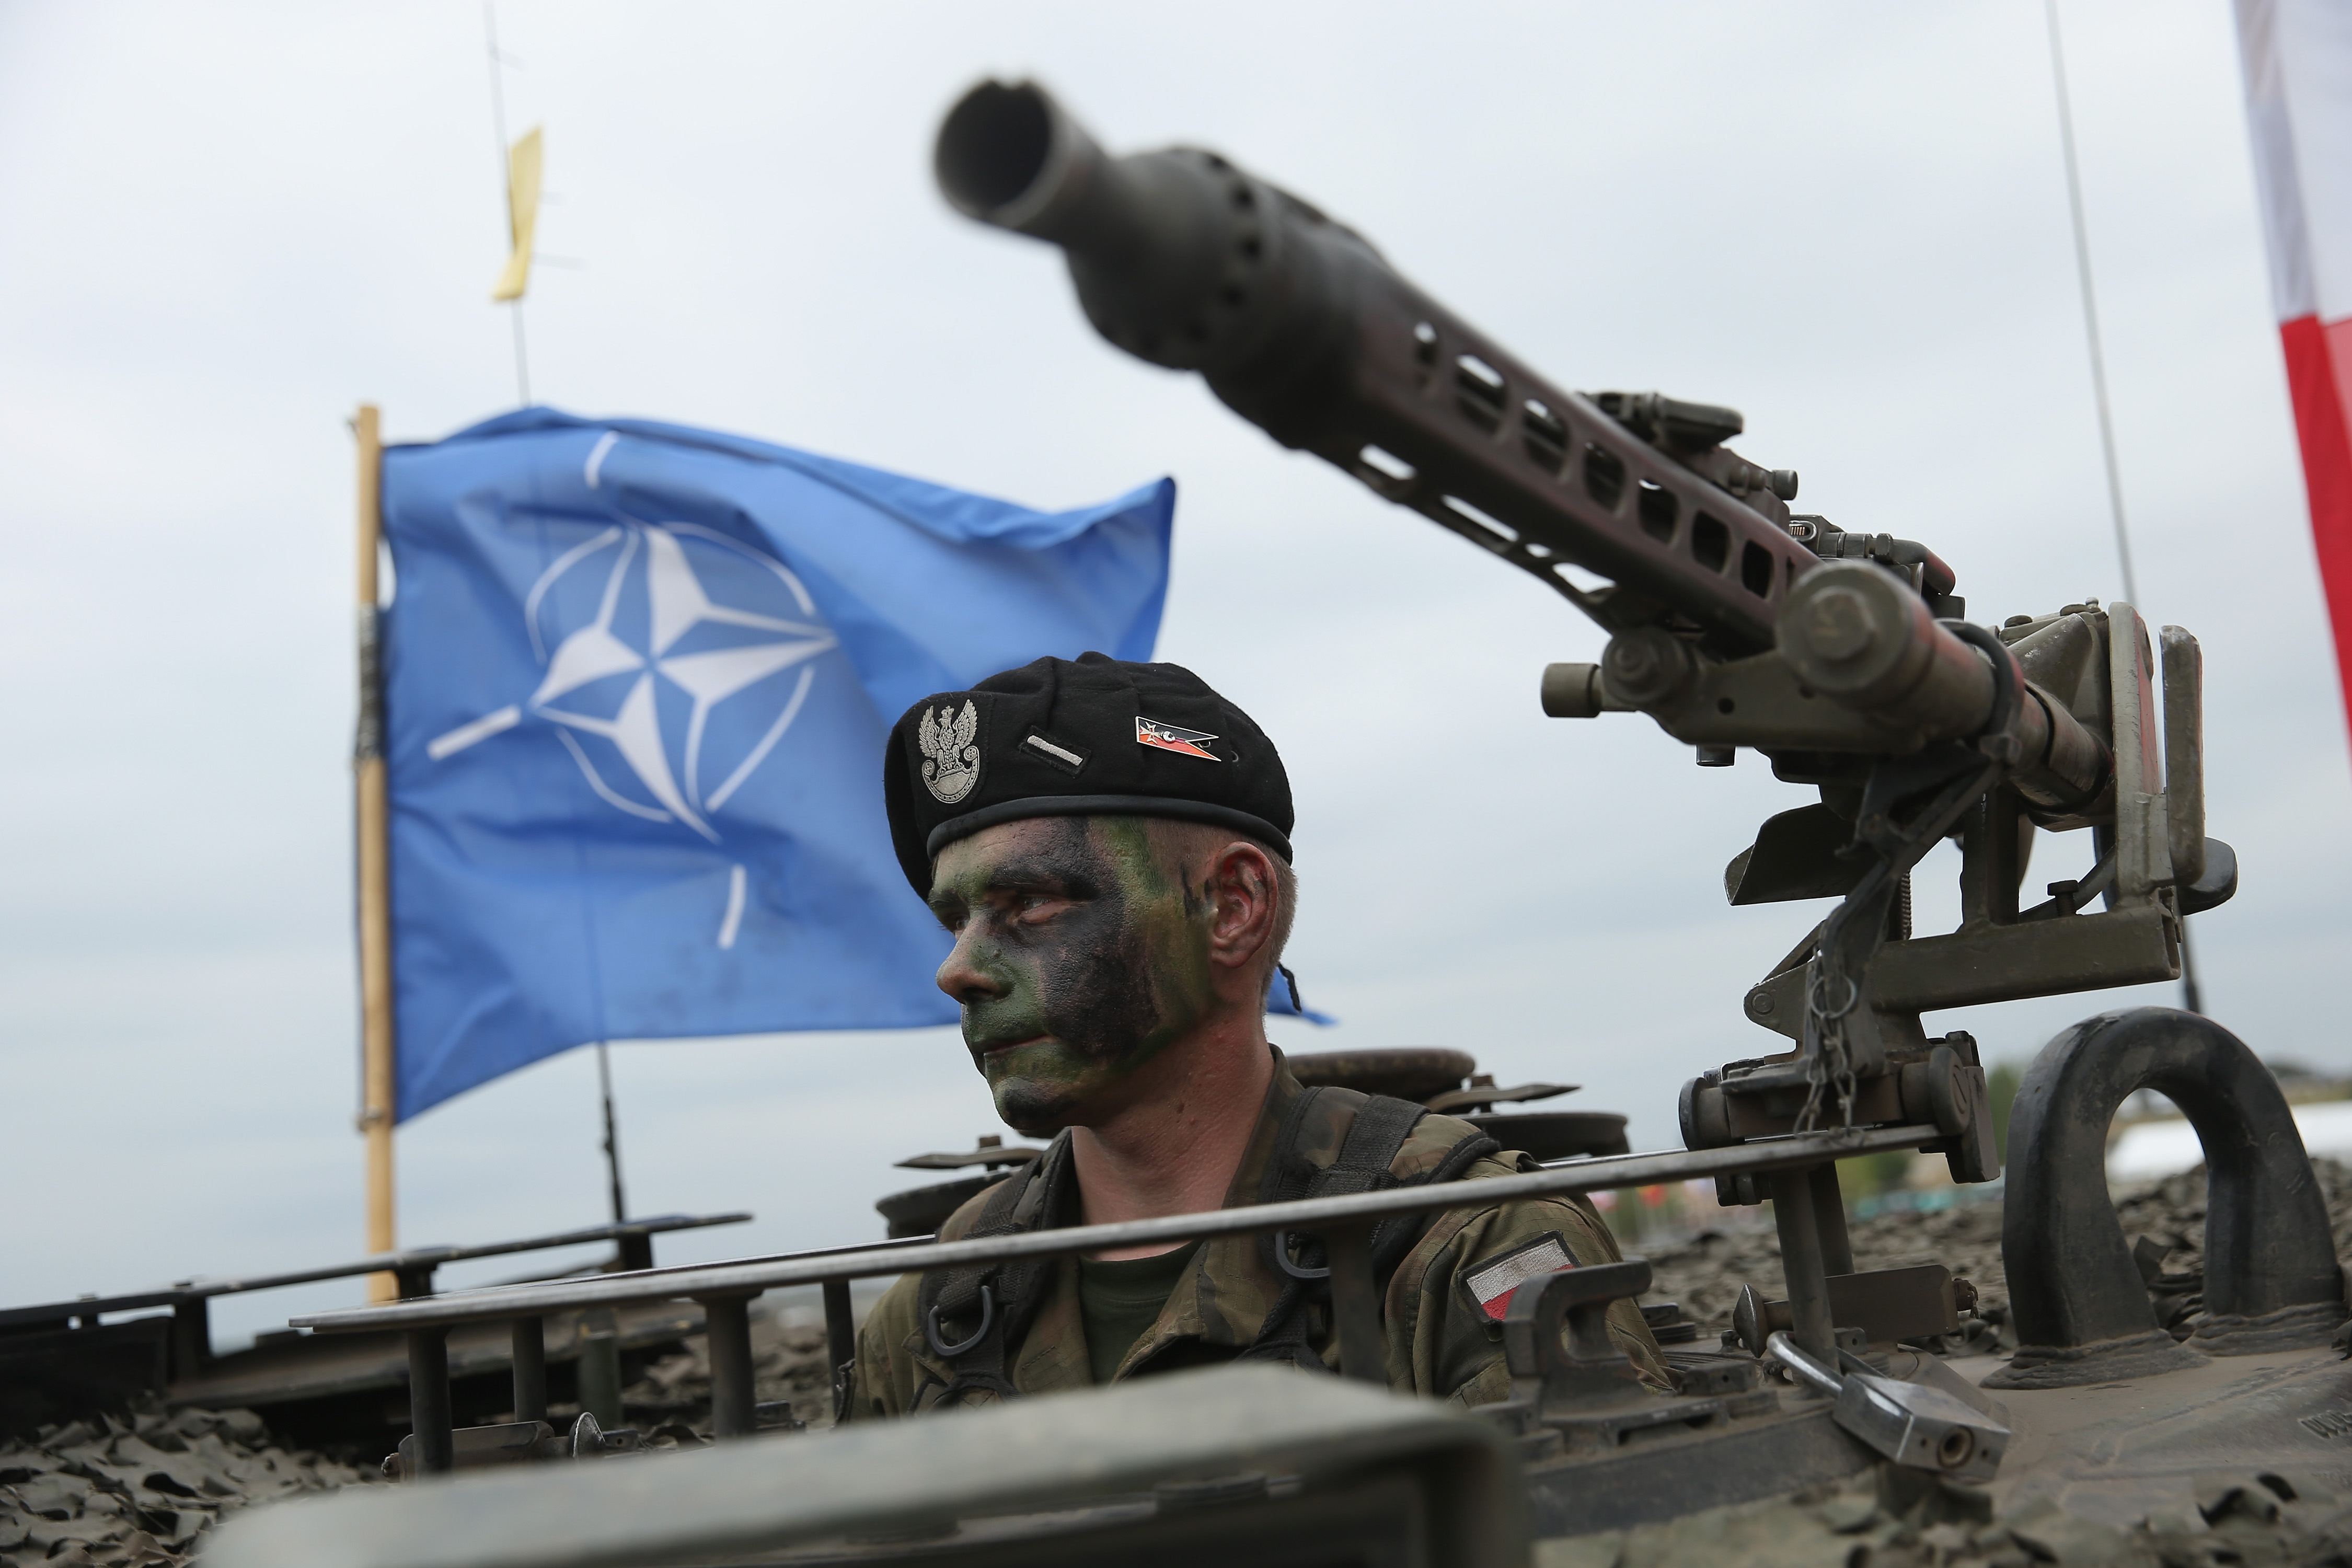 NATO official: Alliance's future hinges on aligned investments